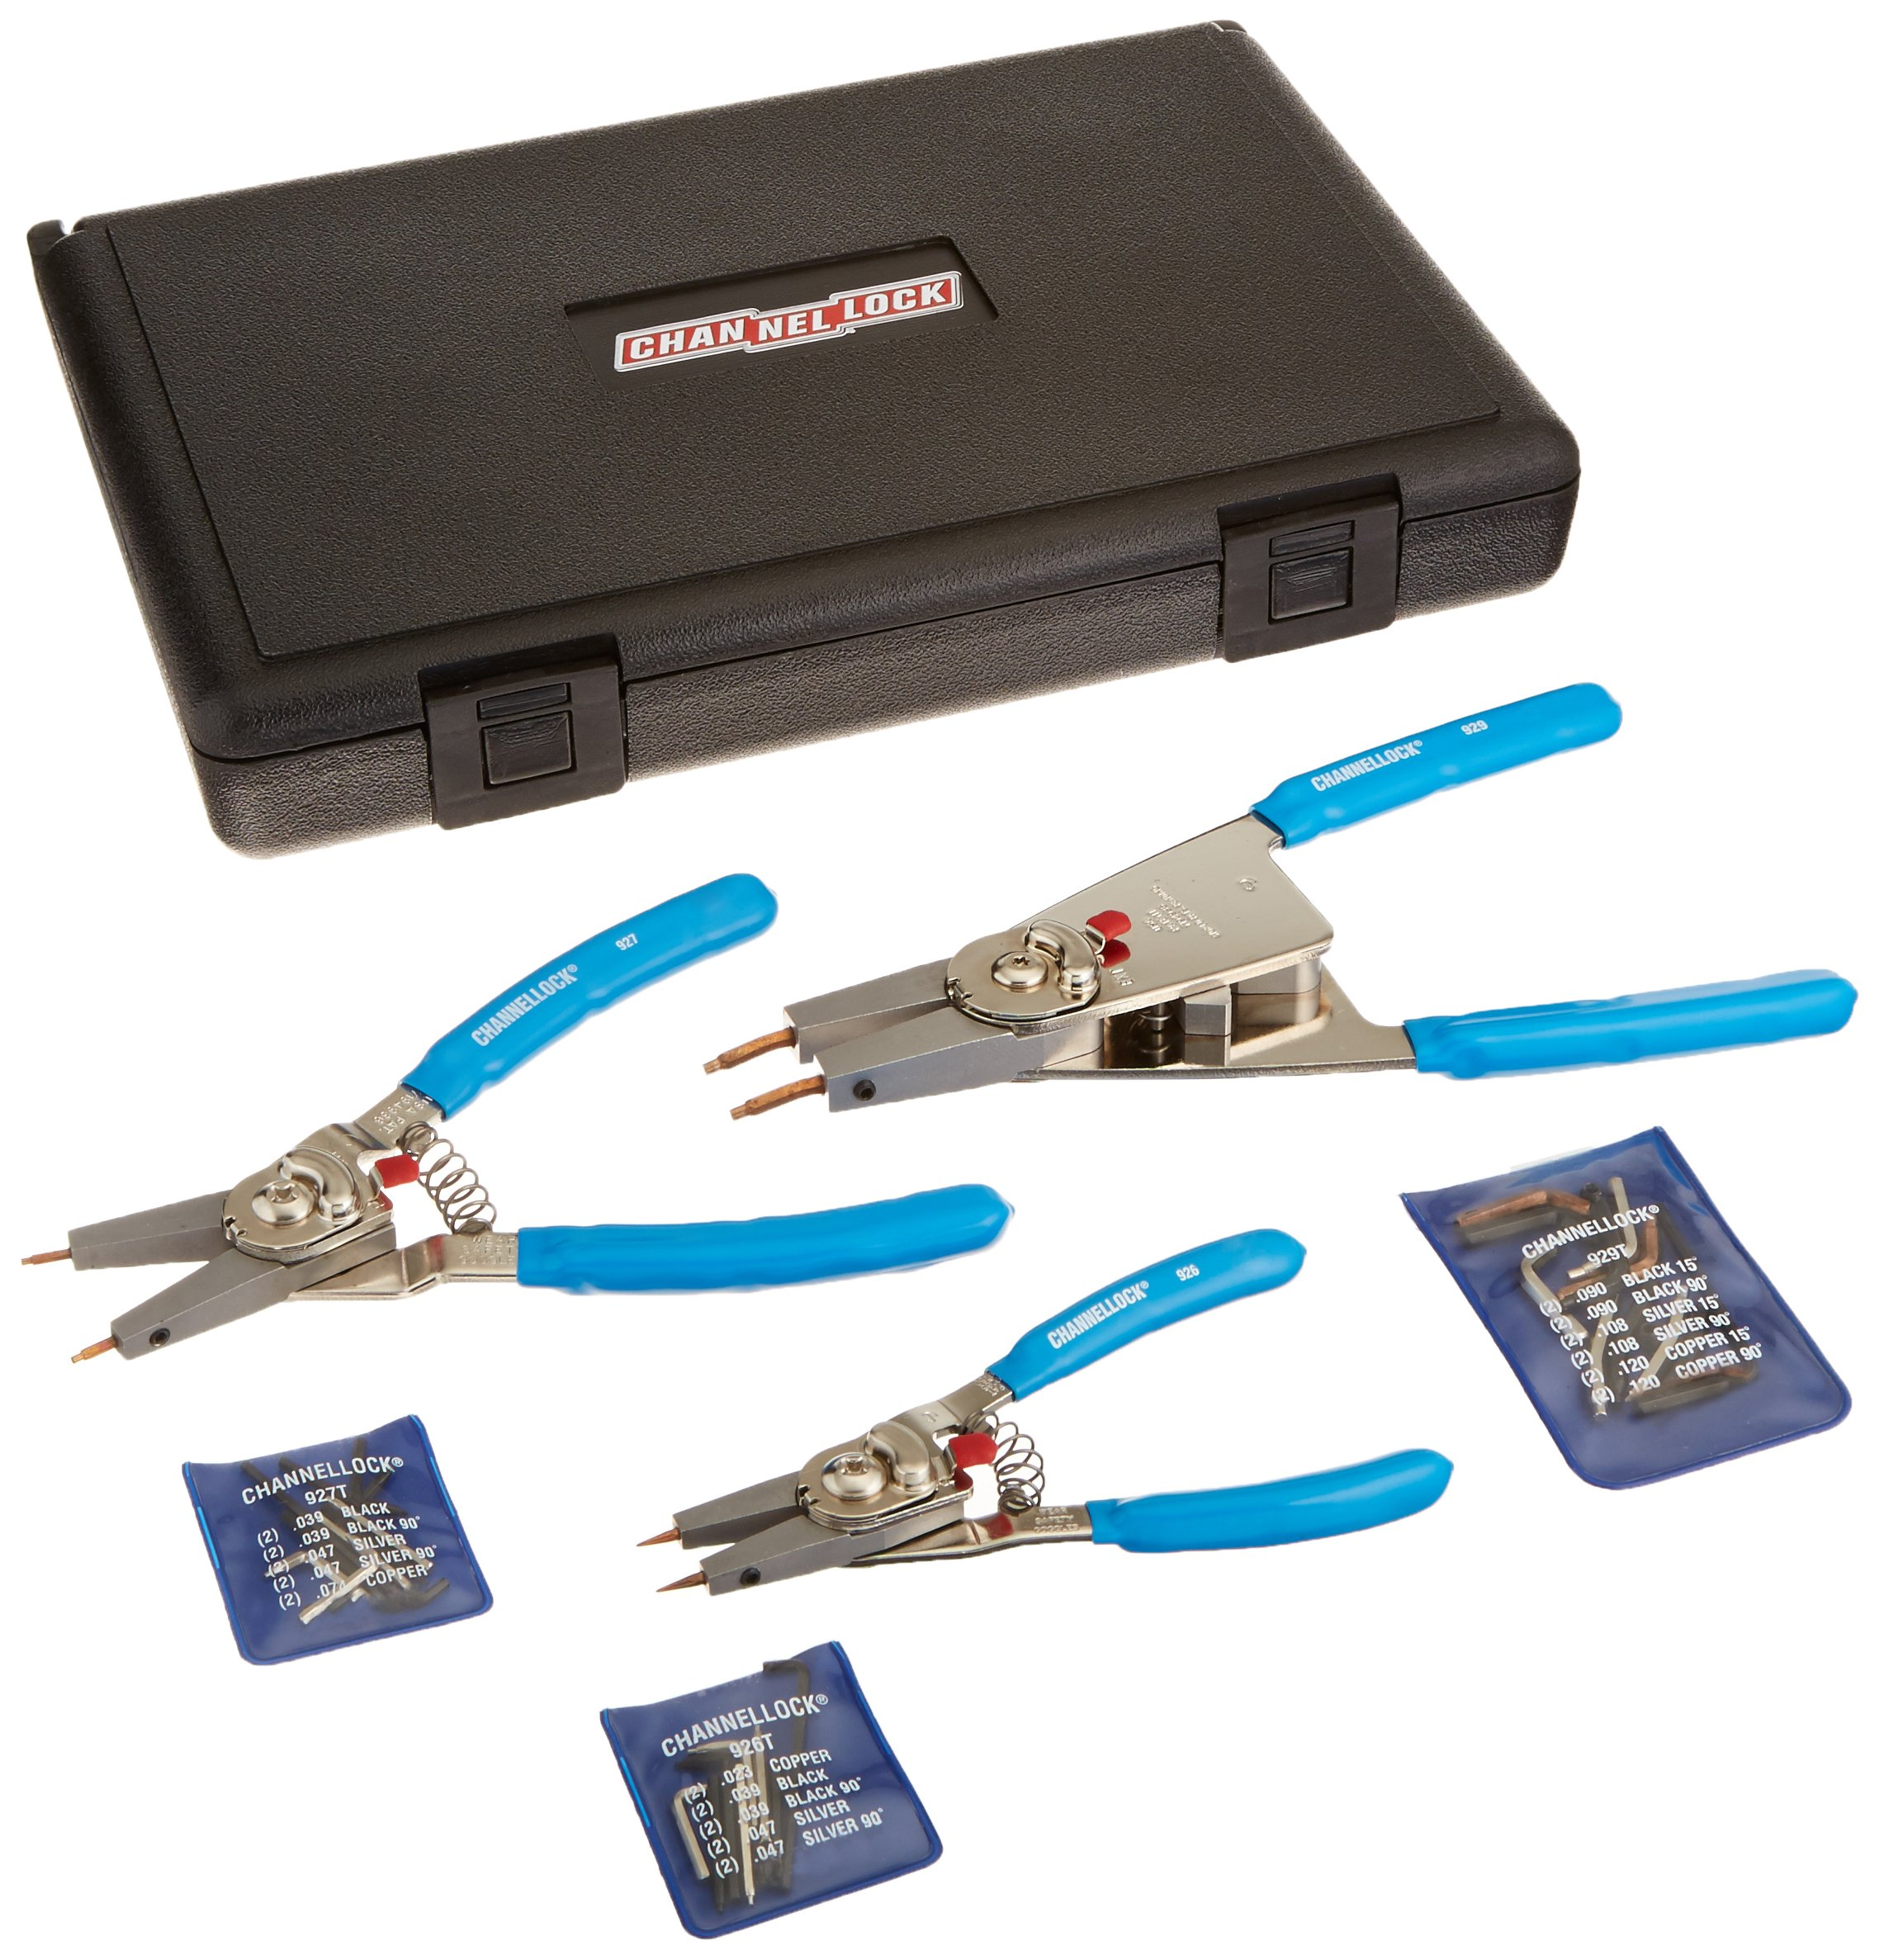 Channellock RT-3 Convertible Retaining Ring Plier Set, 3-Piece product image